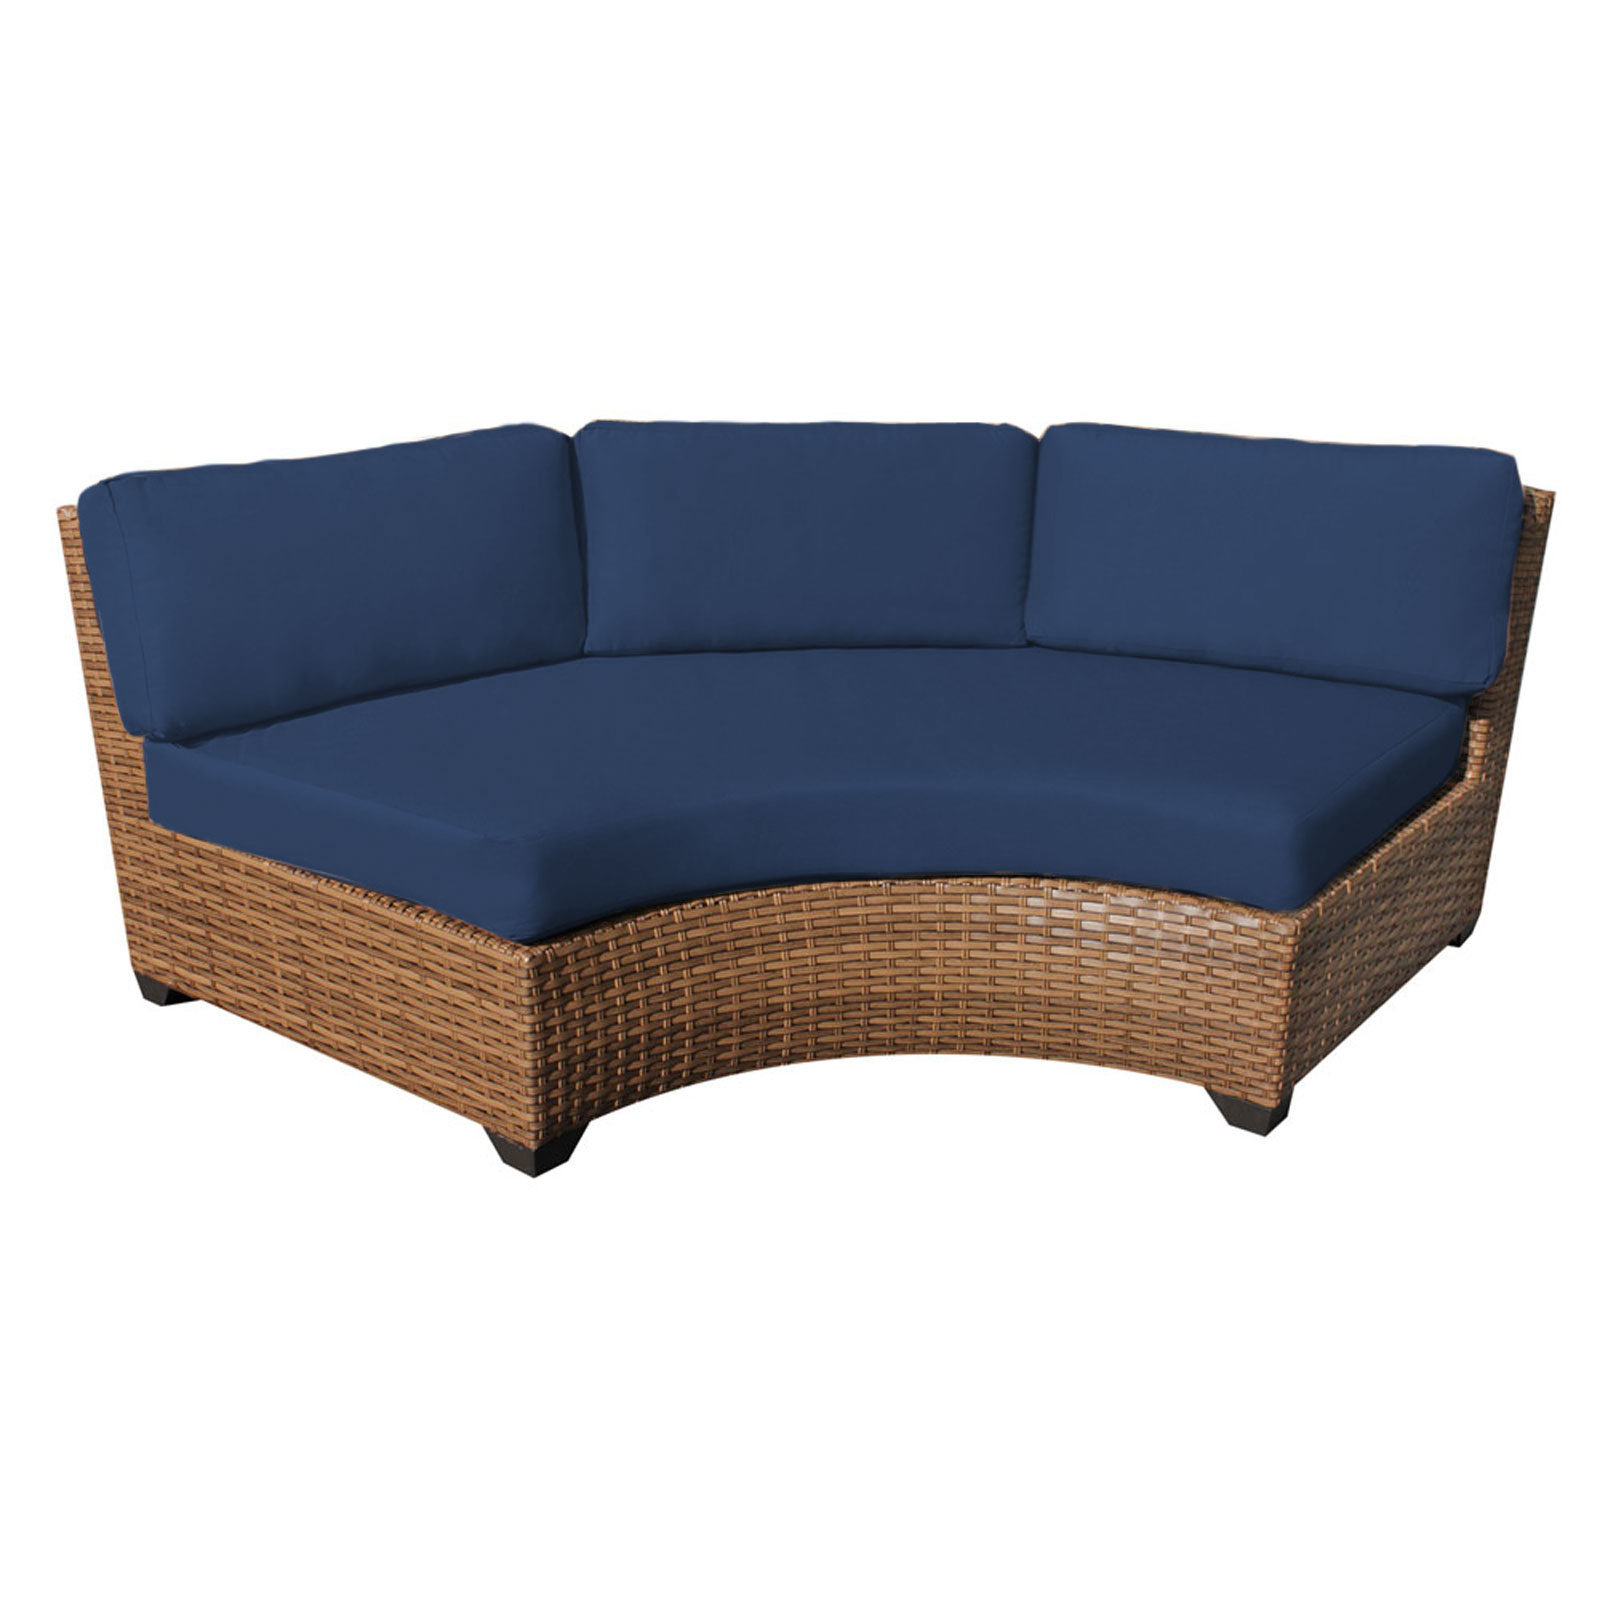 Widely Used Waterbury Curved Armless Sofa With Cushions Inside Waterbury Curved Armless Sofa With Cushions (View 2 of 20)